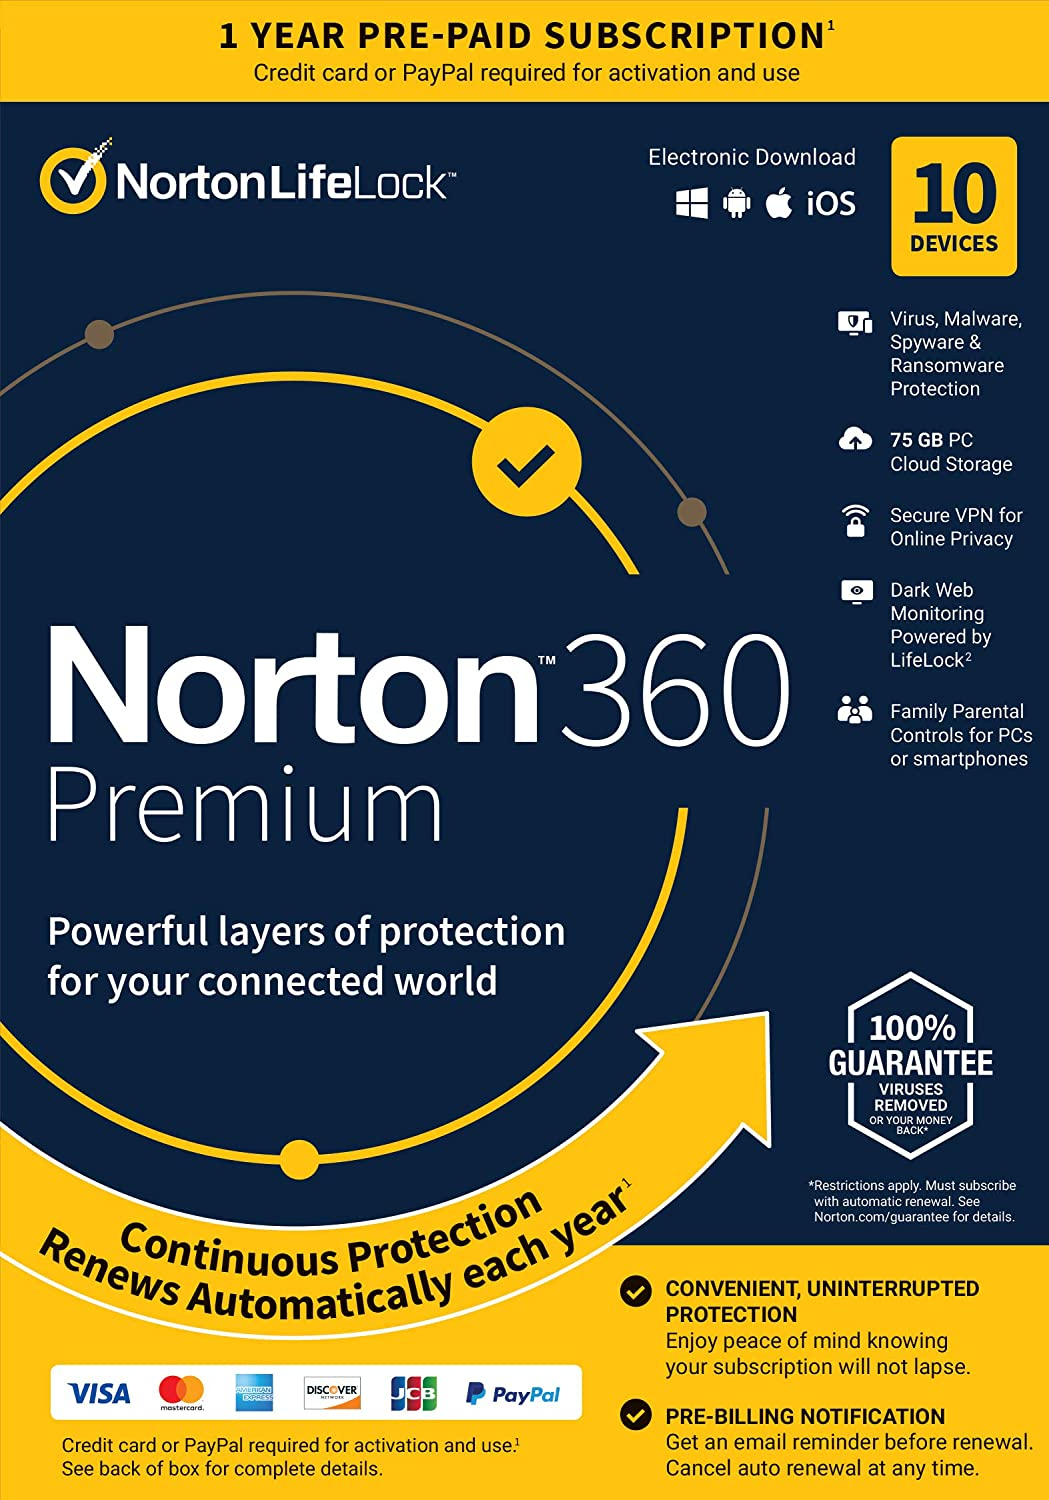 Norton 360 Premium – Antivirus Software for 10 Devices with Auto Renewal - Includes VPN, PC Cloud Backup & Dark Web Monitoring Powered by LifeLock[Key card]